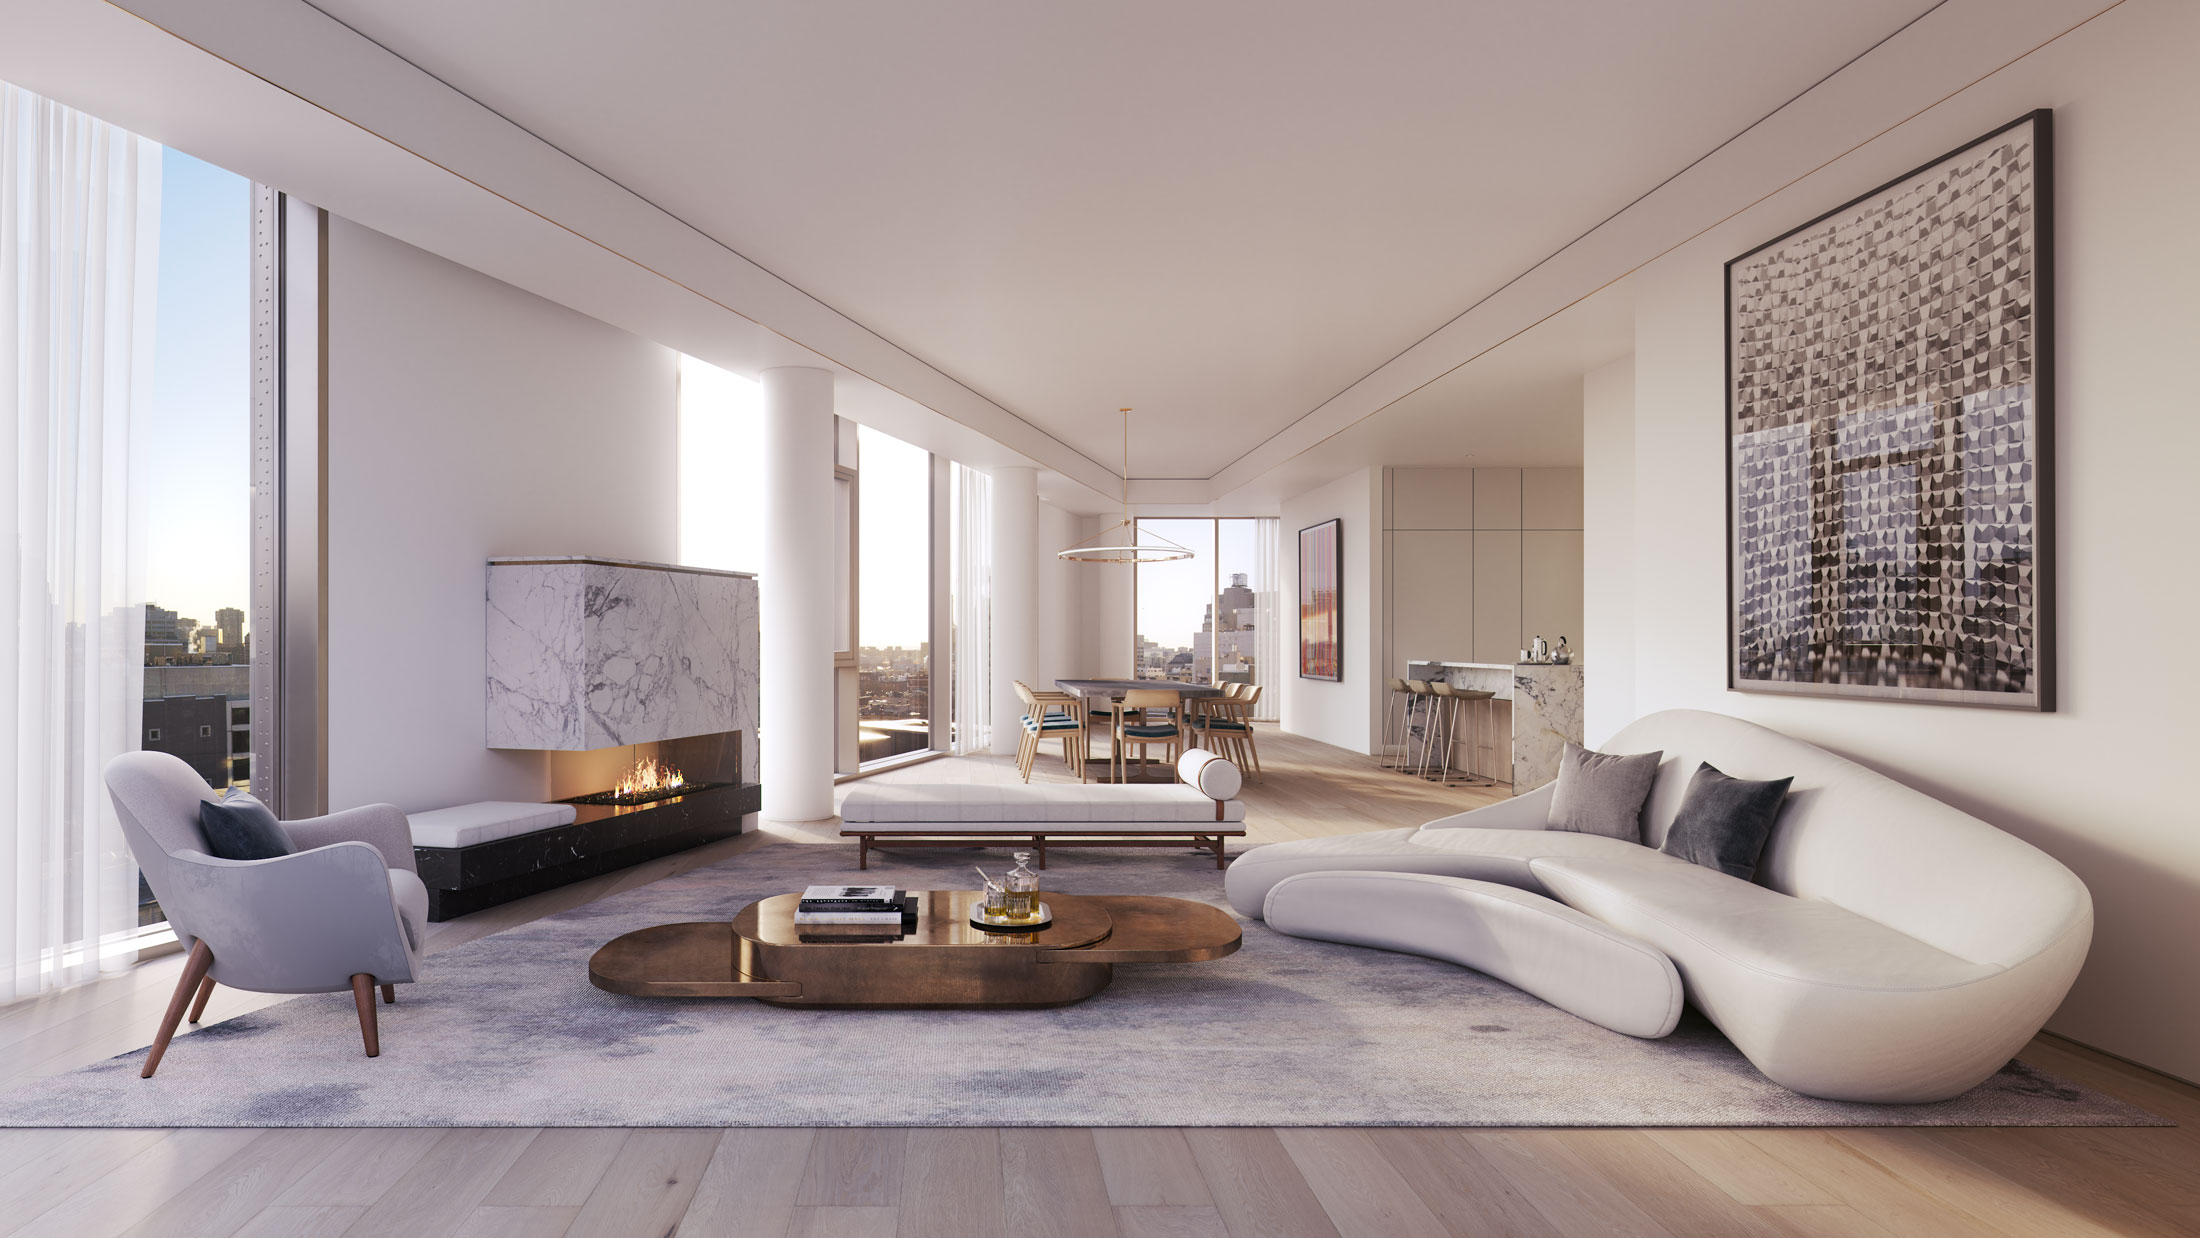 Architectural Rendering of the living room of the 80 East 10th Street project located in Greenwich Village in New York City